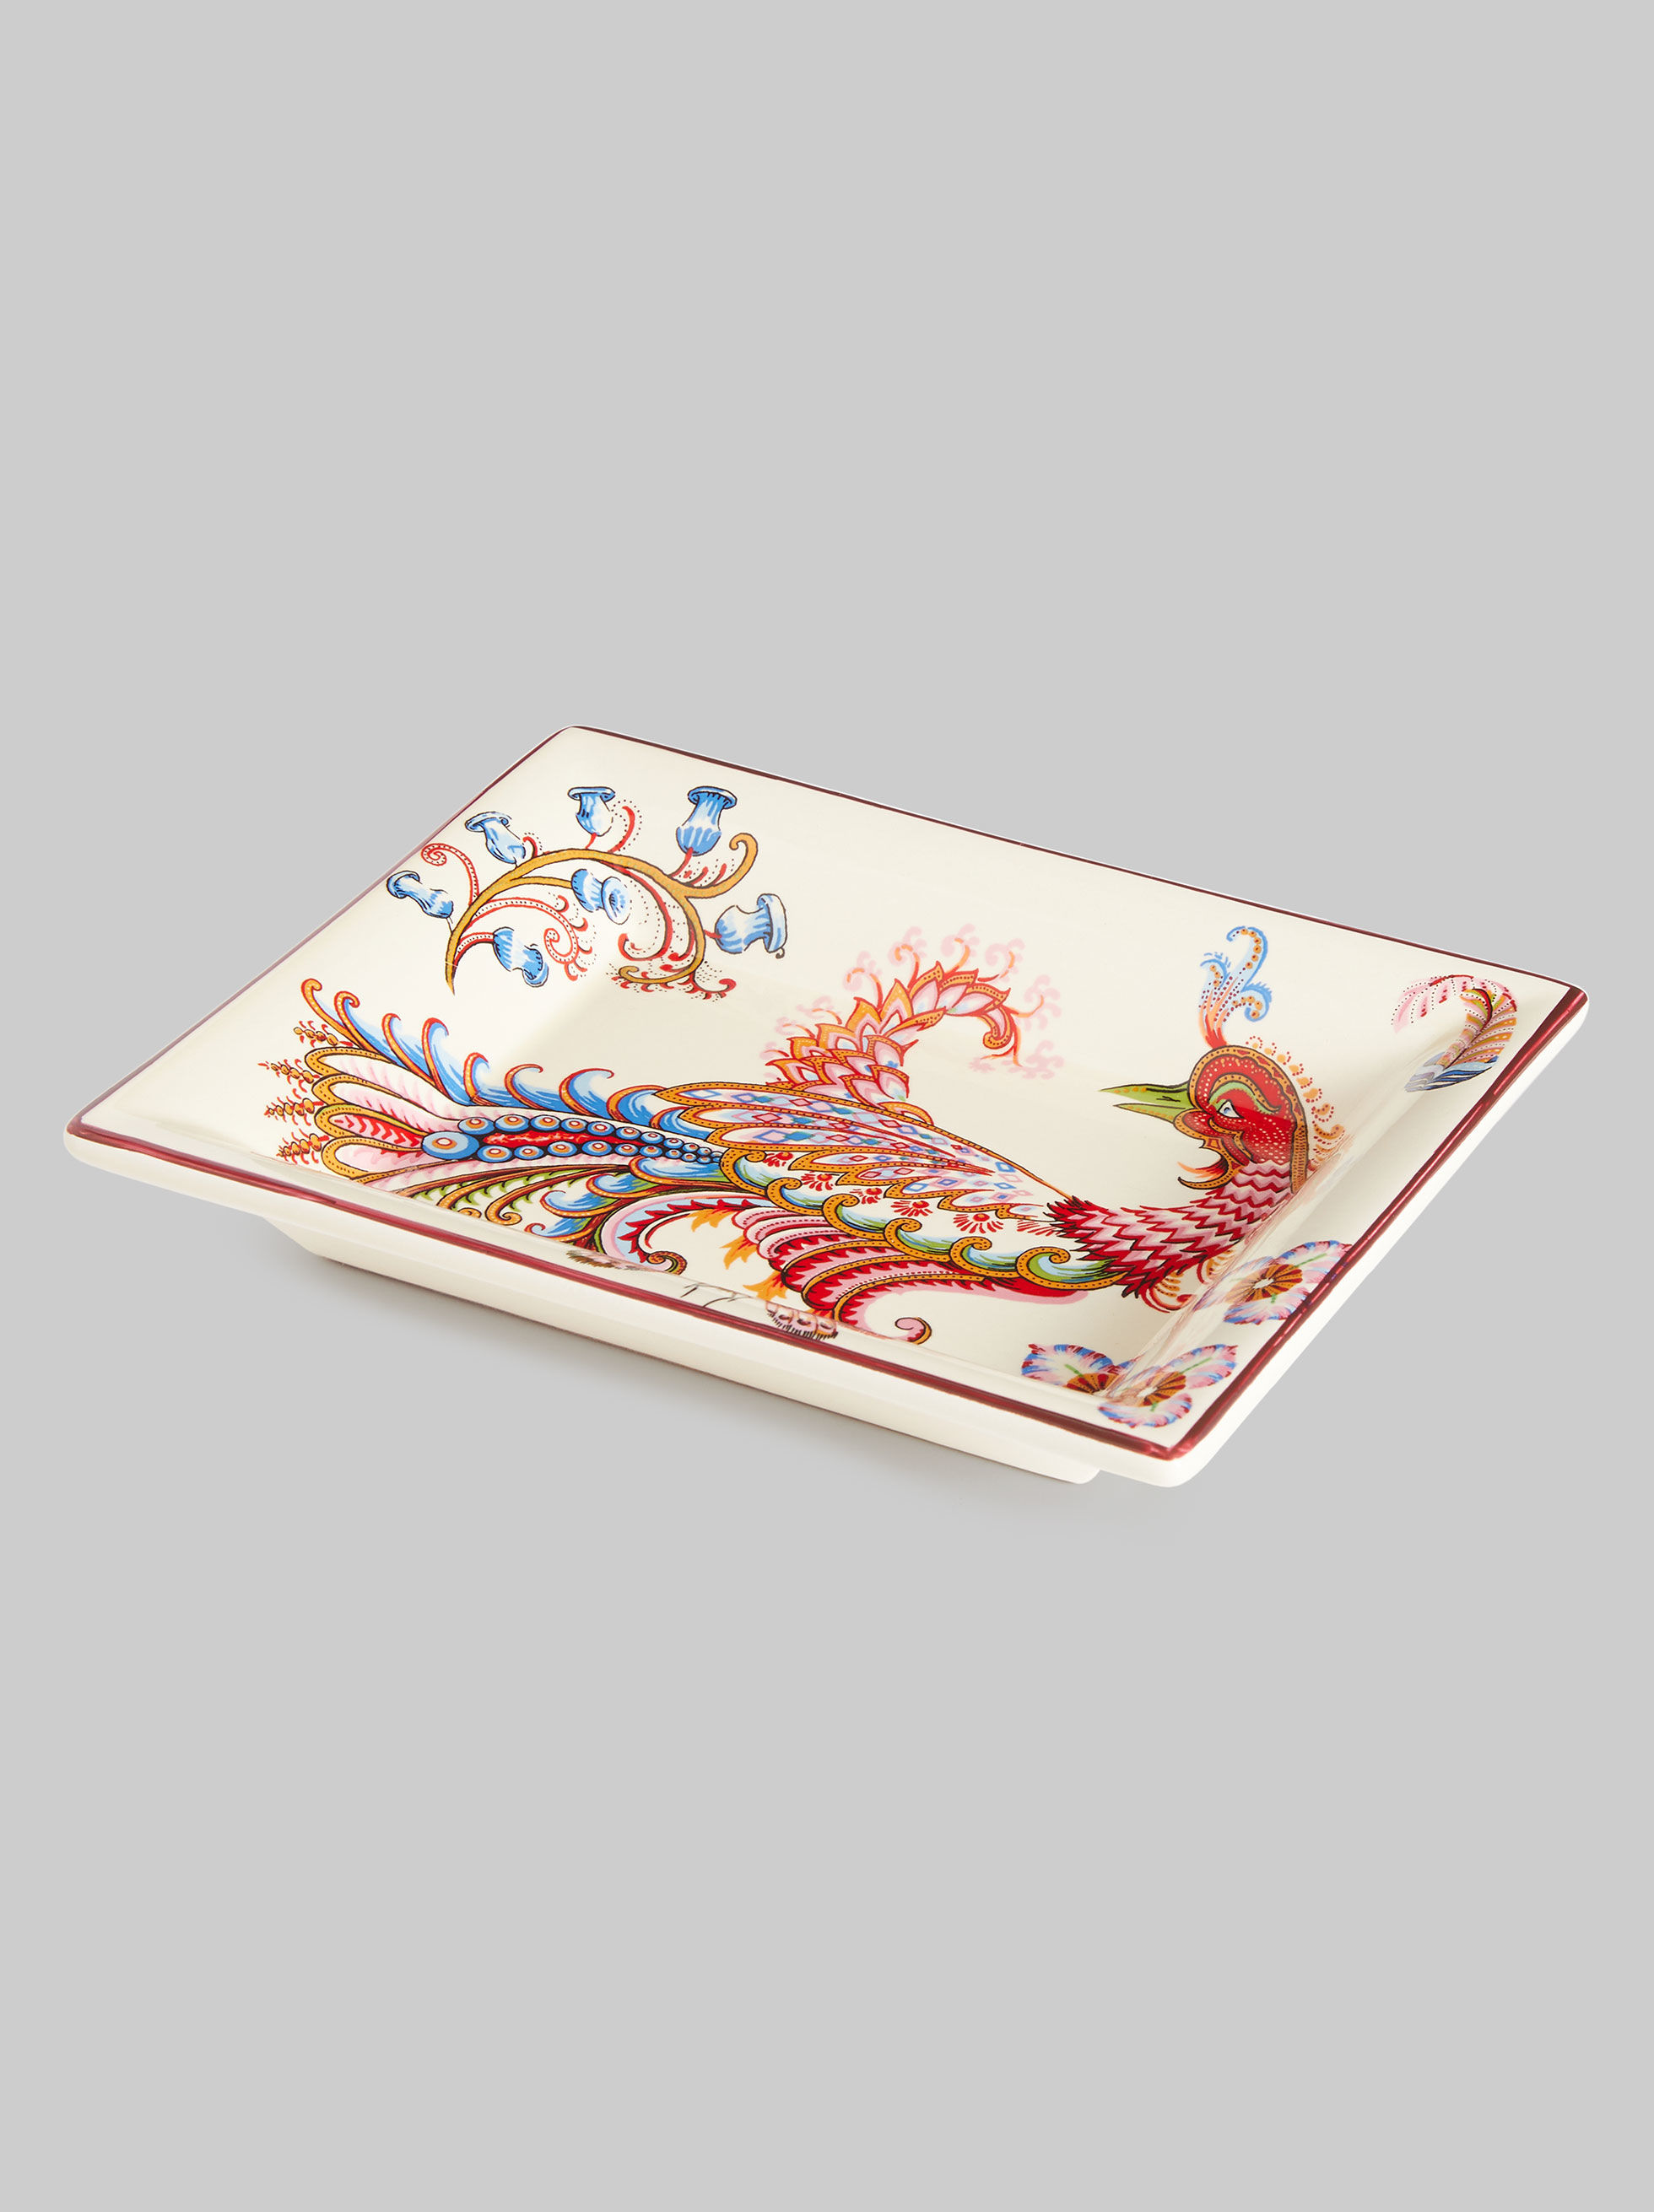 RECTANGULAR CERAMIC TRAY WITH PEACOCK